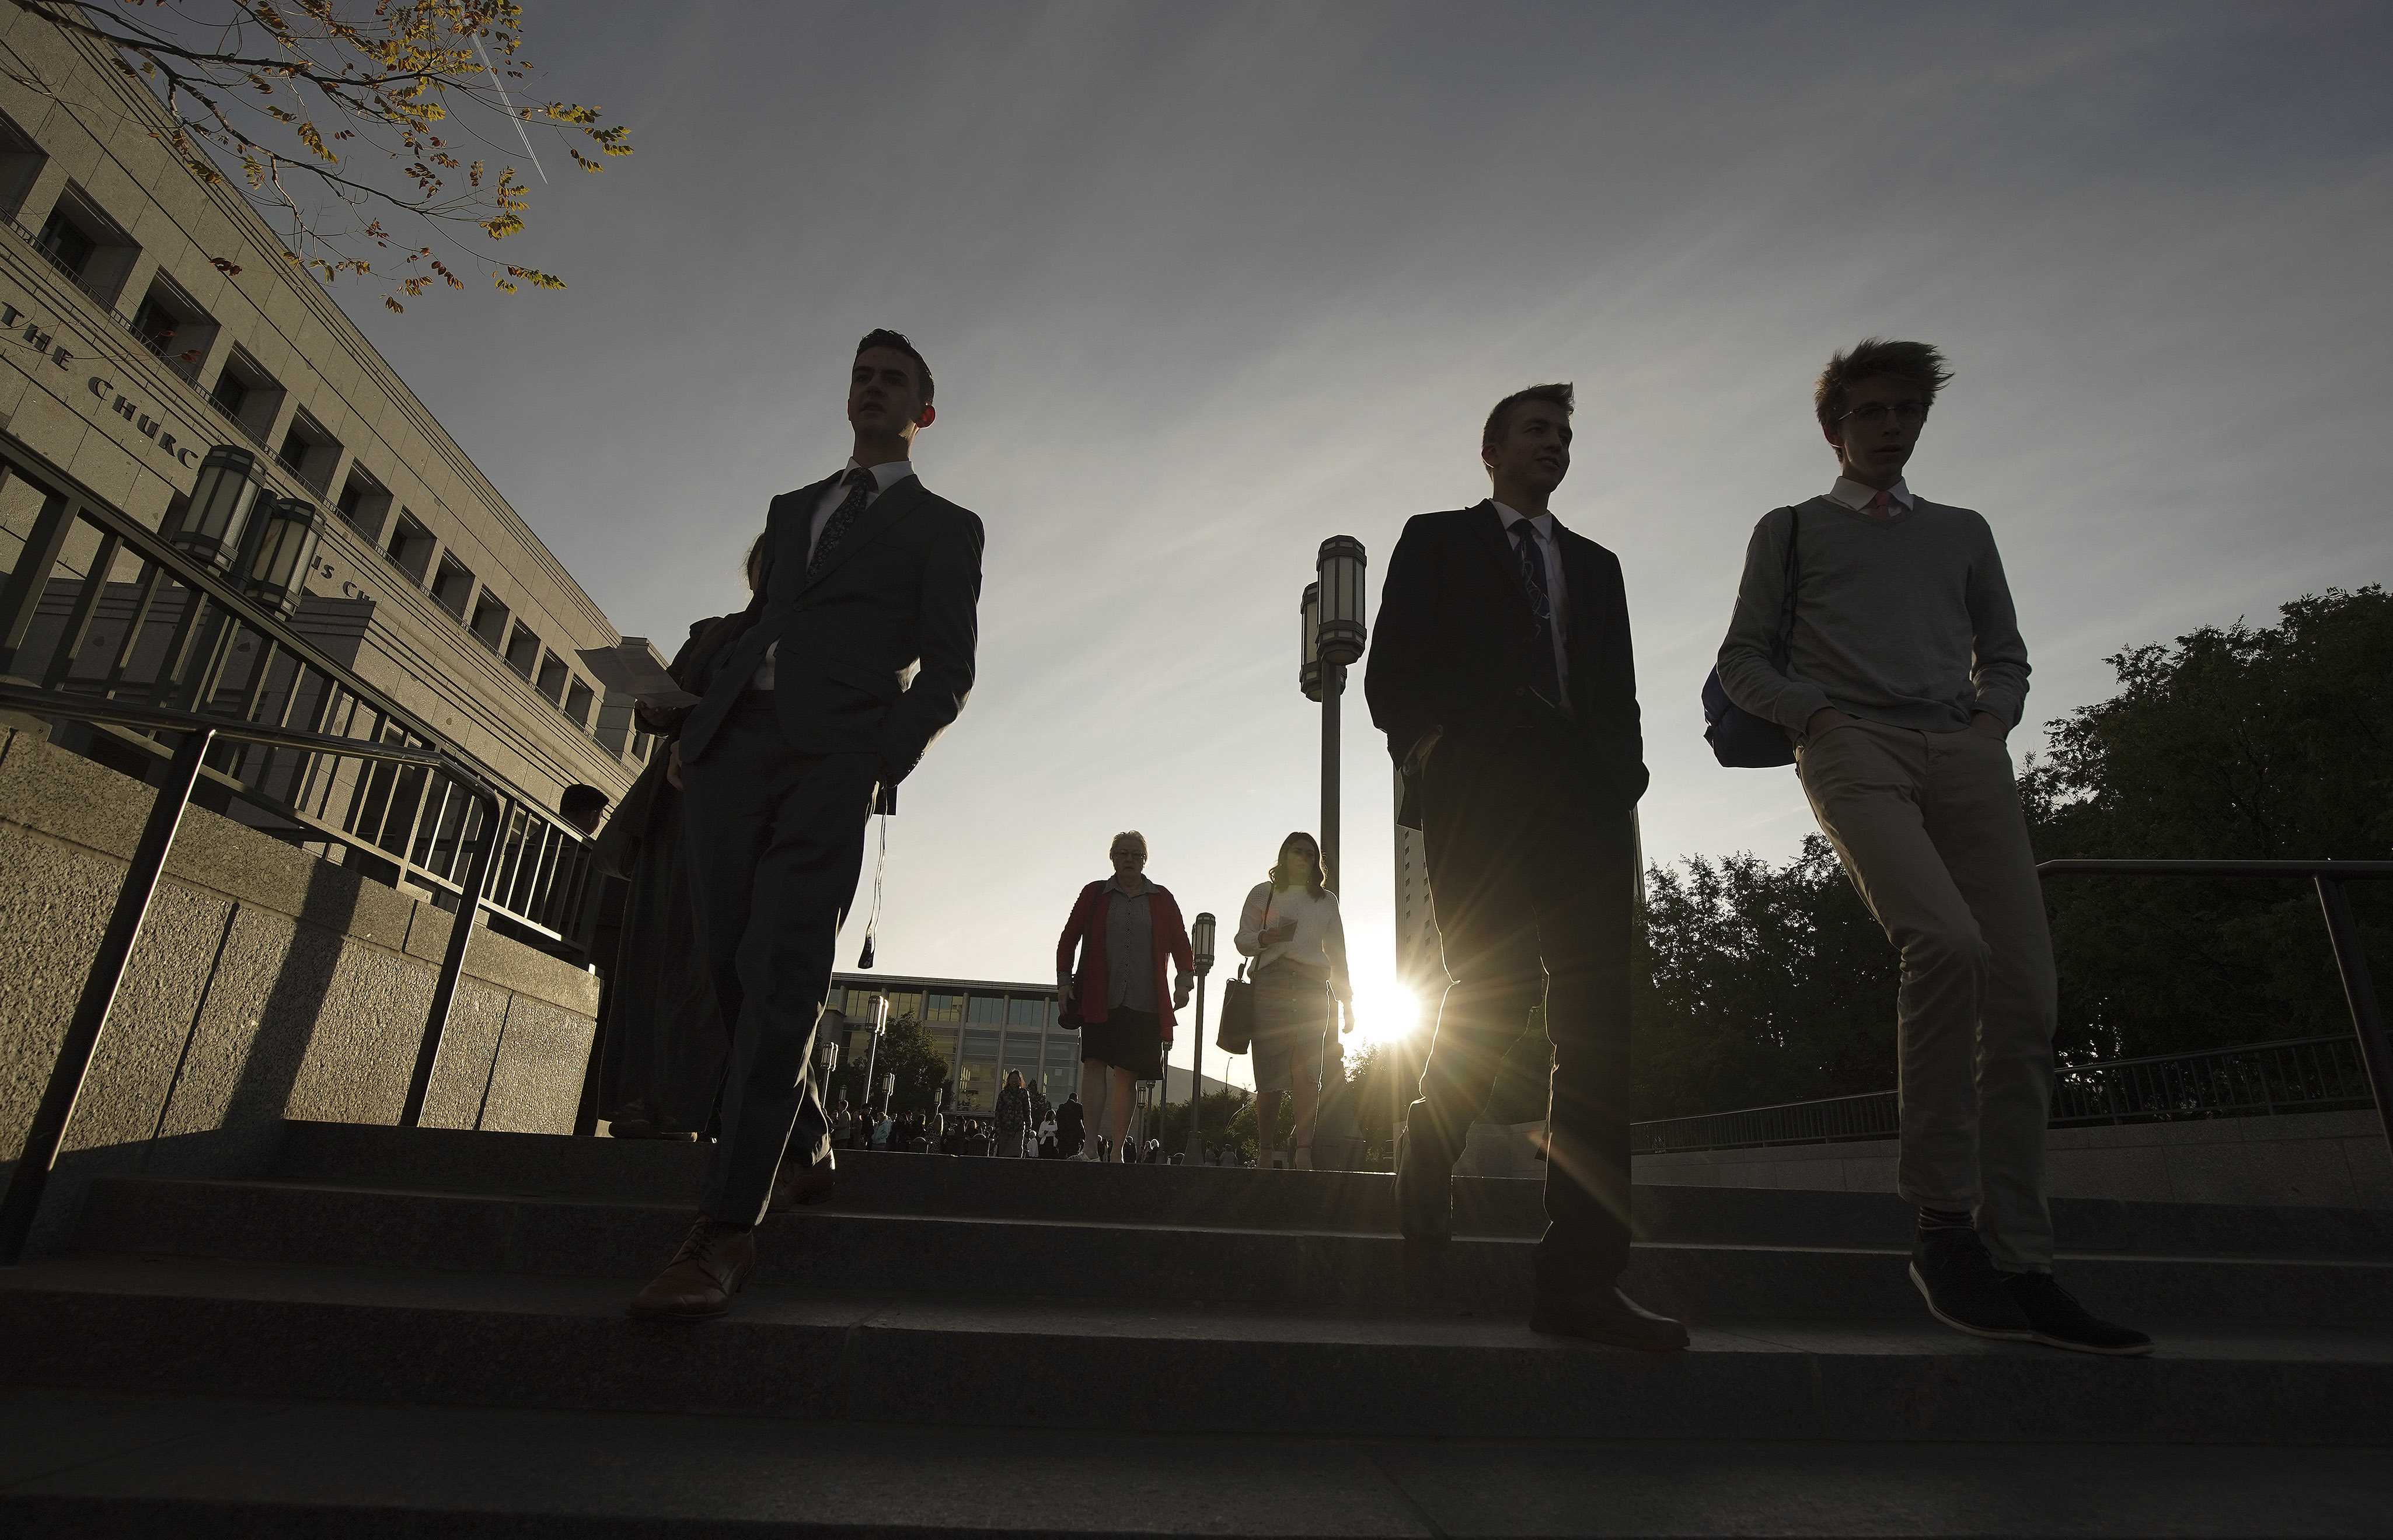 Conferencegoers walk outside the Conference Center prior to the first session of the 189th Semiannual General Conference of The Church of Jesus Christ of Latter-day Saints in Salt Lake City on Saturday, Oct. 5, 2019.